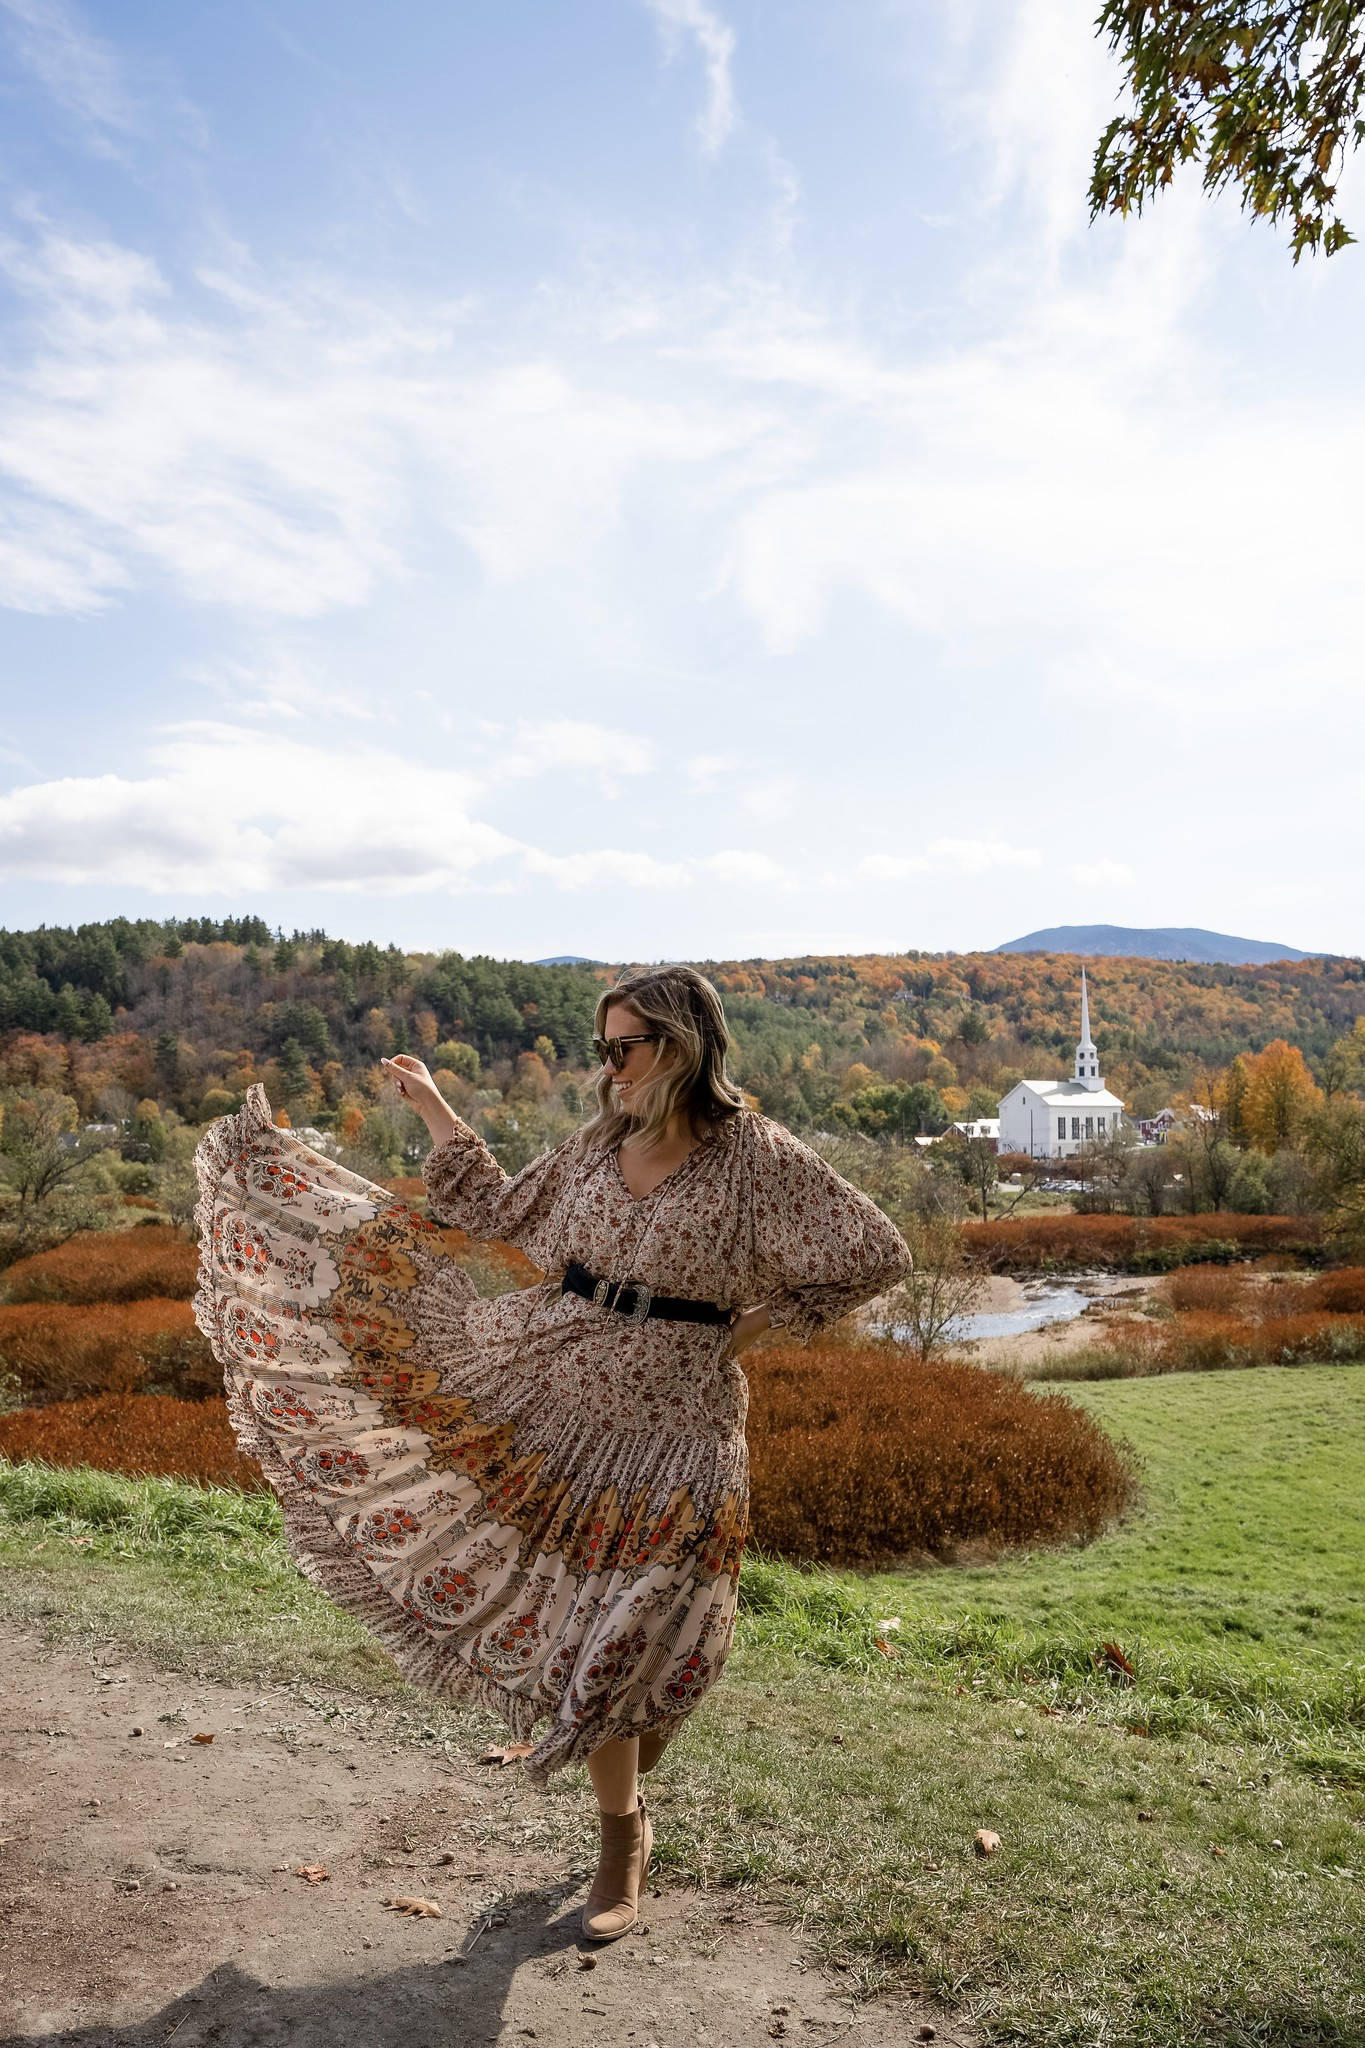 Free People Feeling Groovy Border Maxi Dress | Stowe Vermont Church | What to Wear in Vermont in the Fall | Vermont Packing List for Fall | What to Wear in Vermont in October | What to Wear on a Fall Vacation | Fall Outfits